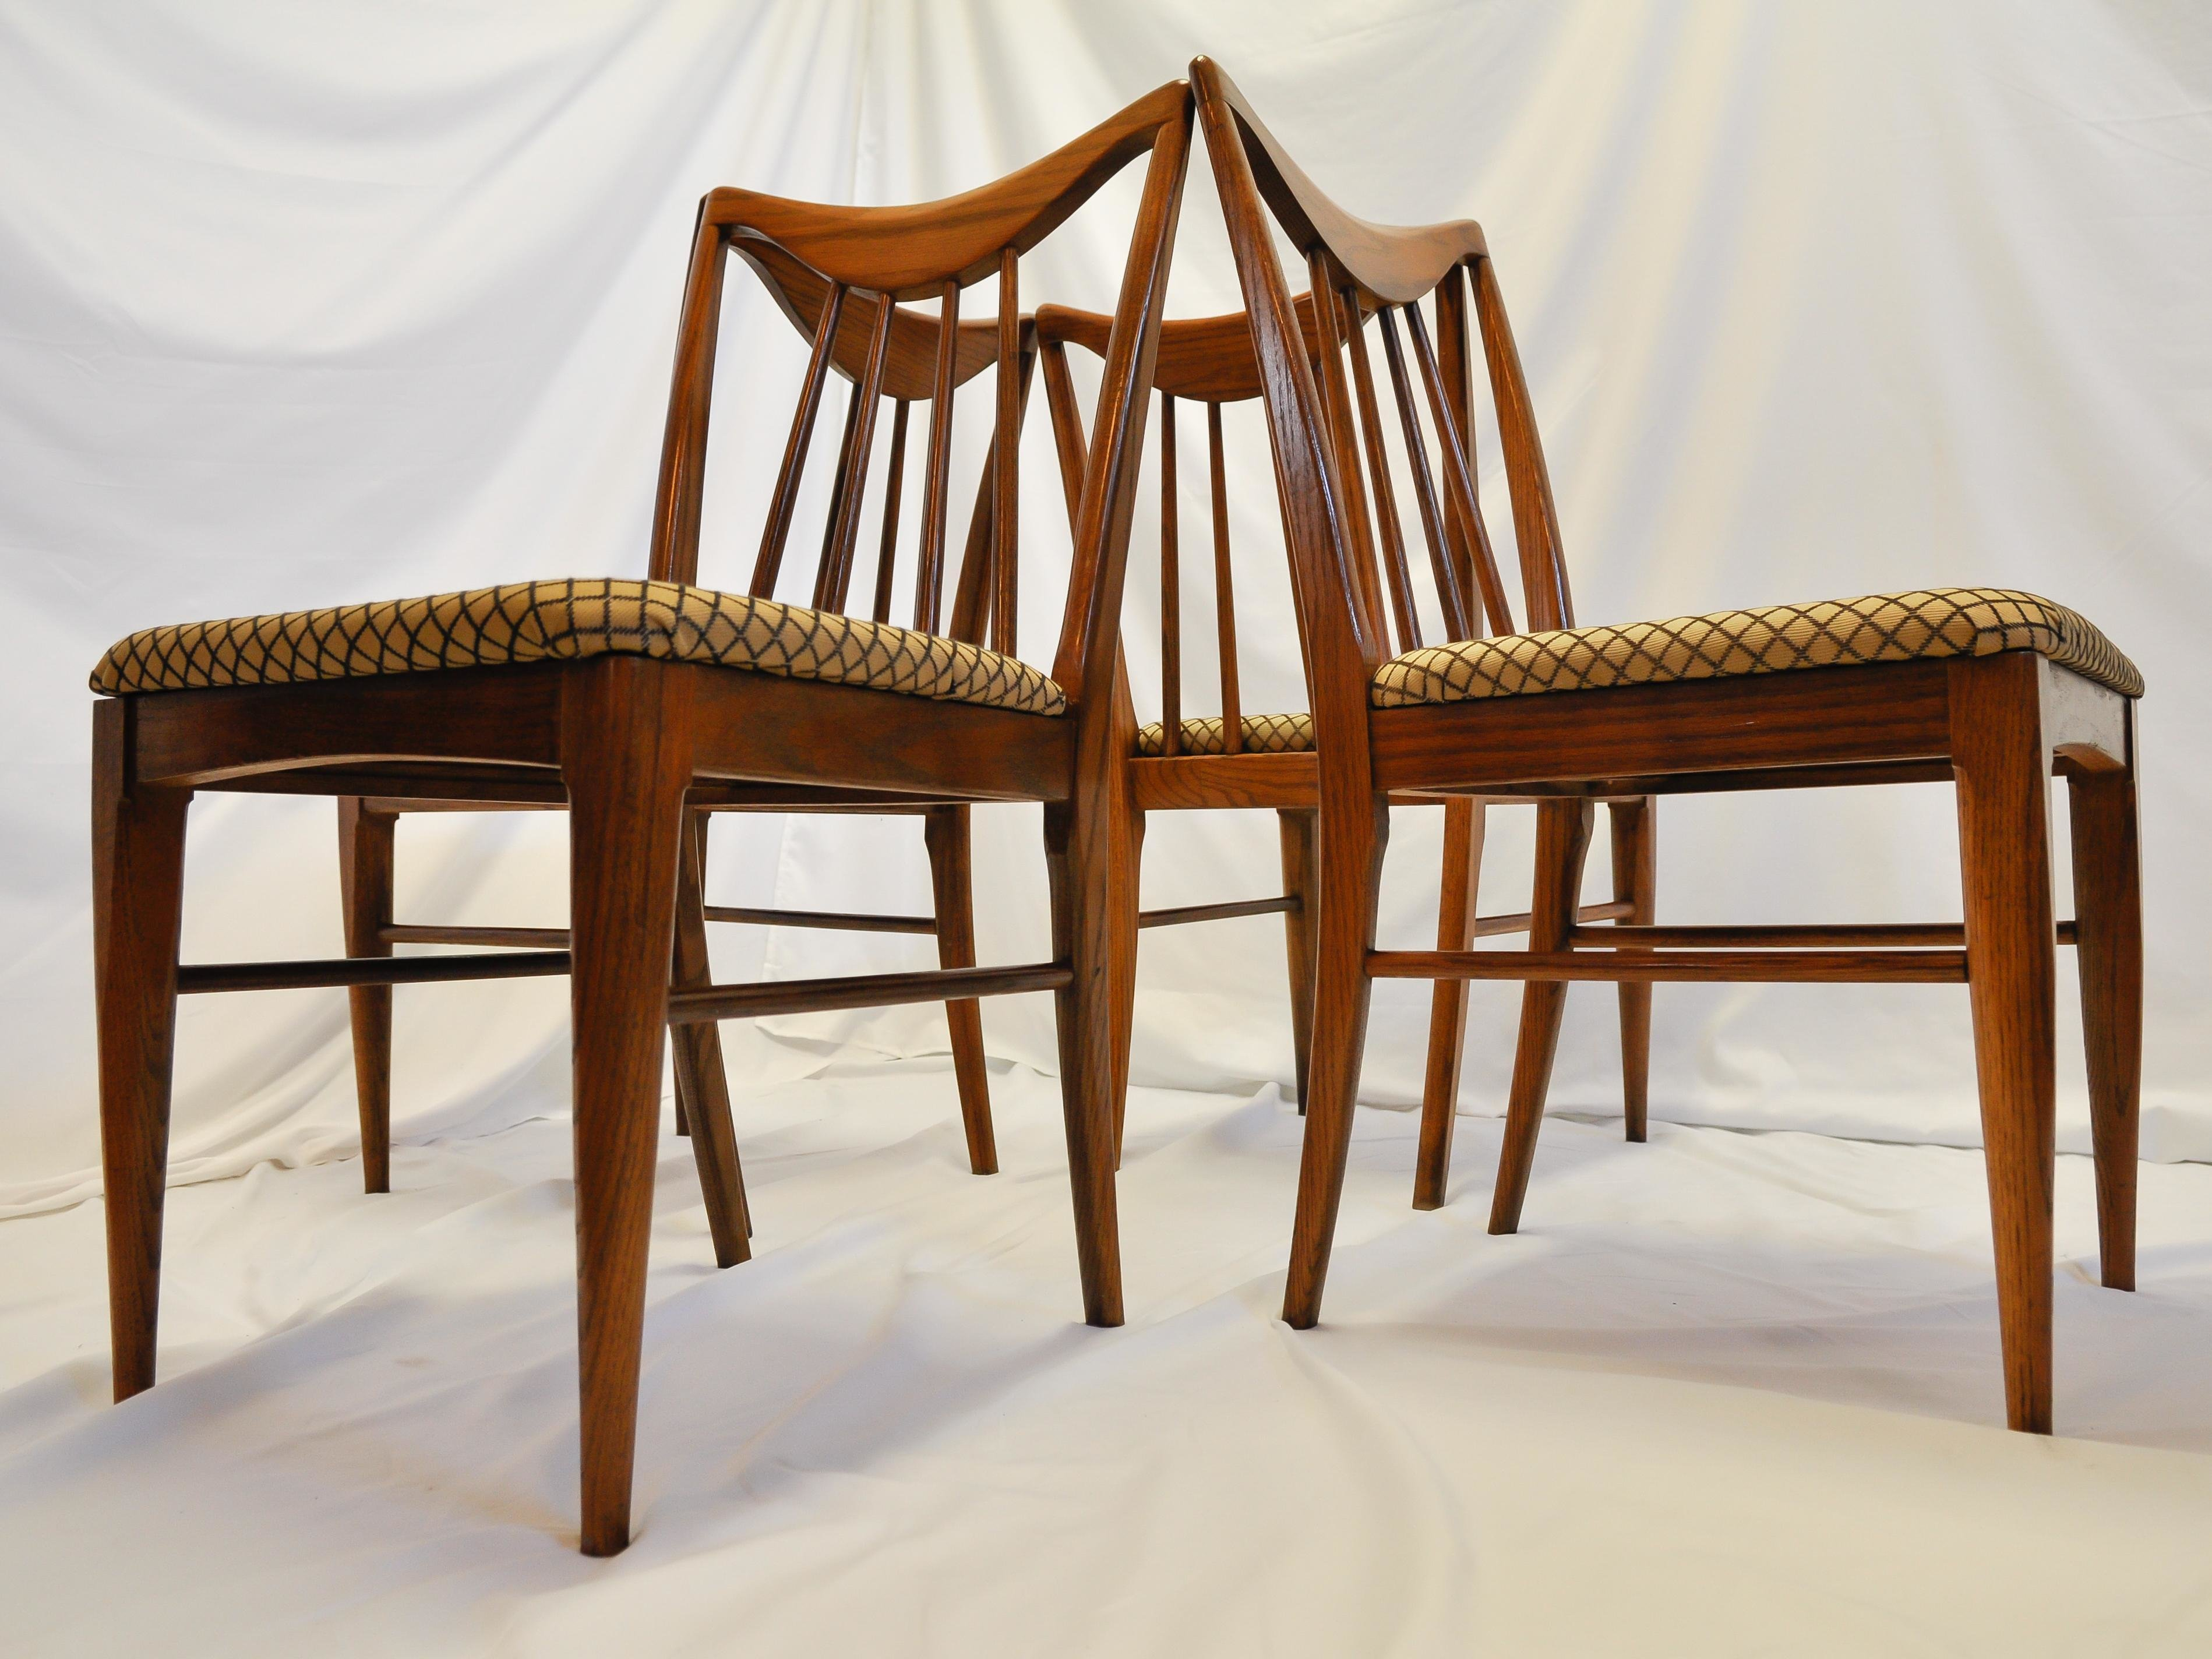 Best Mid Century Danish Walnut Dining Chairs By Keller Furniture S 4 Chairish With Pictures